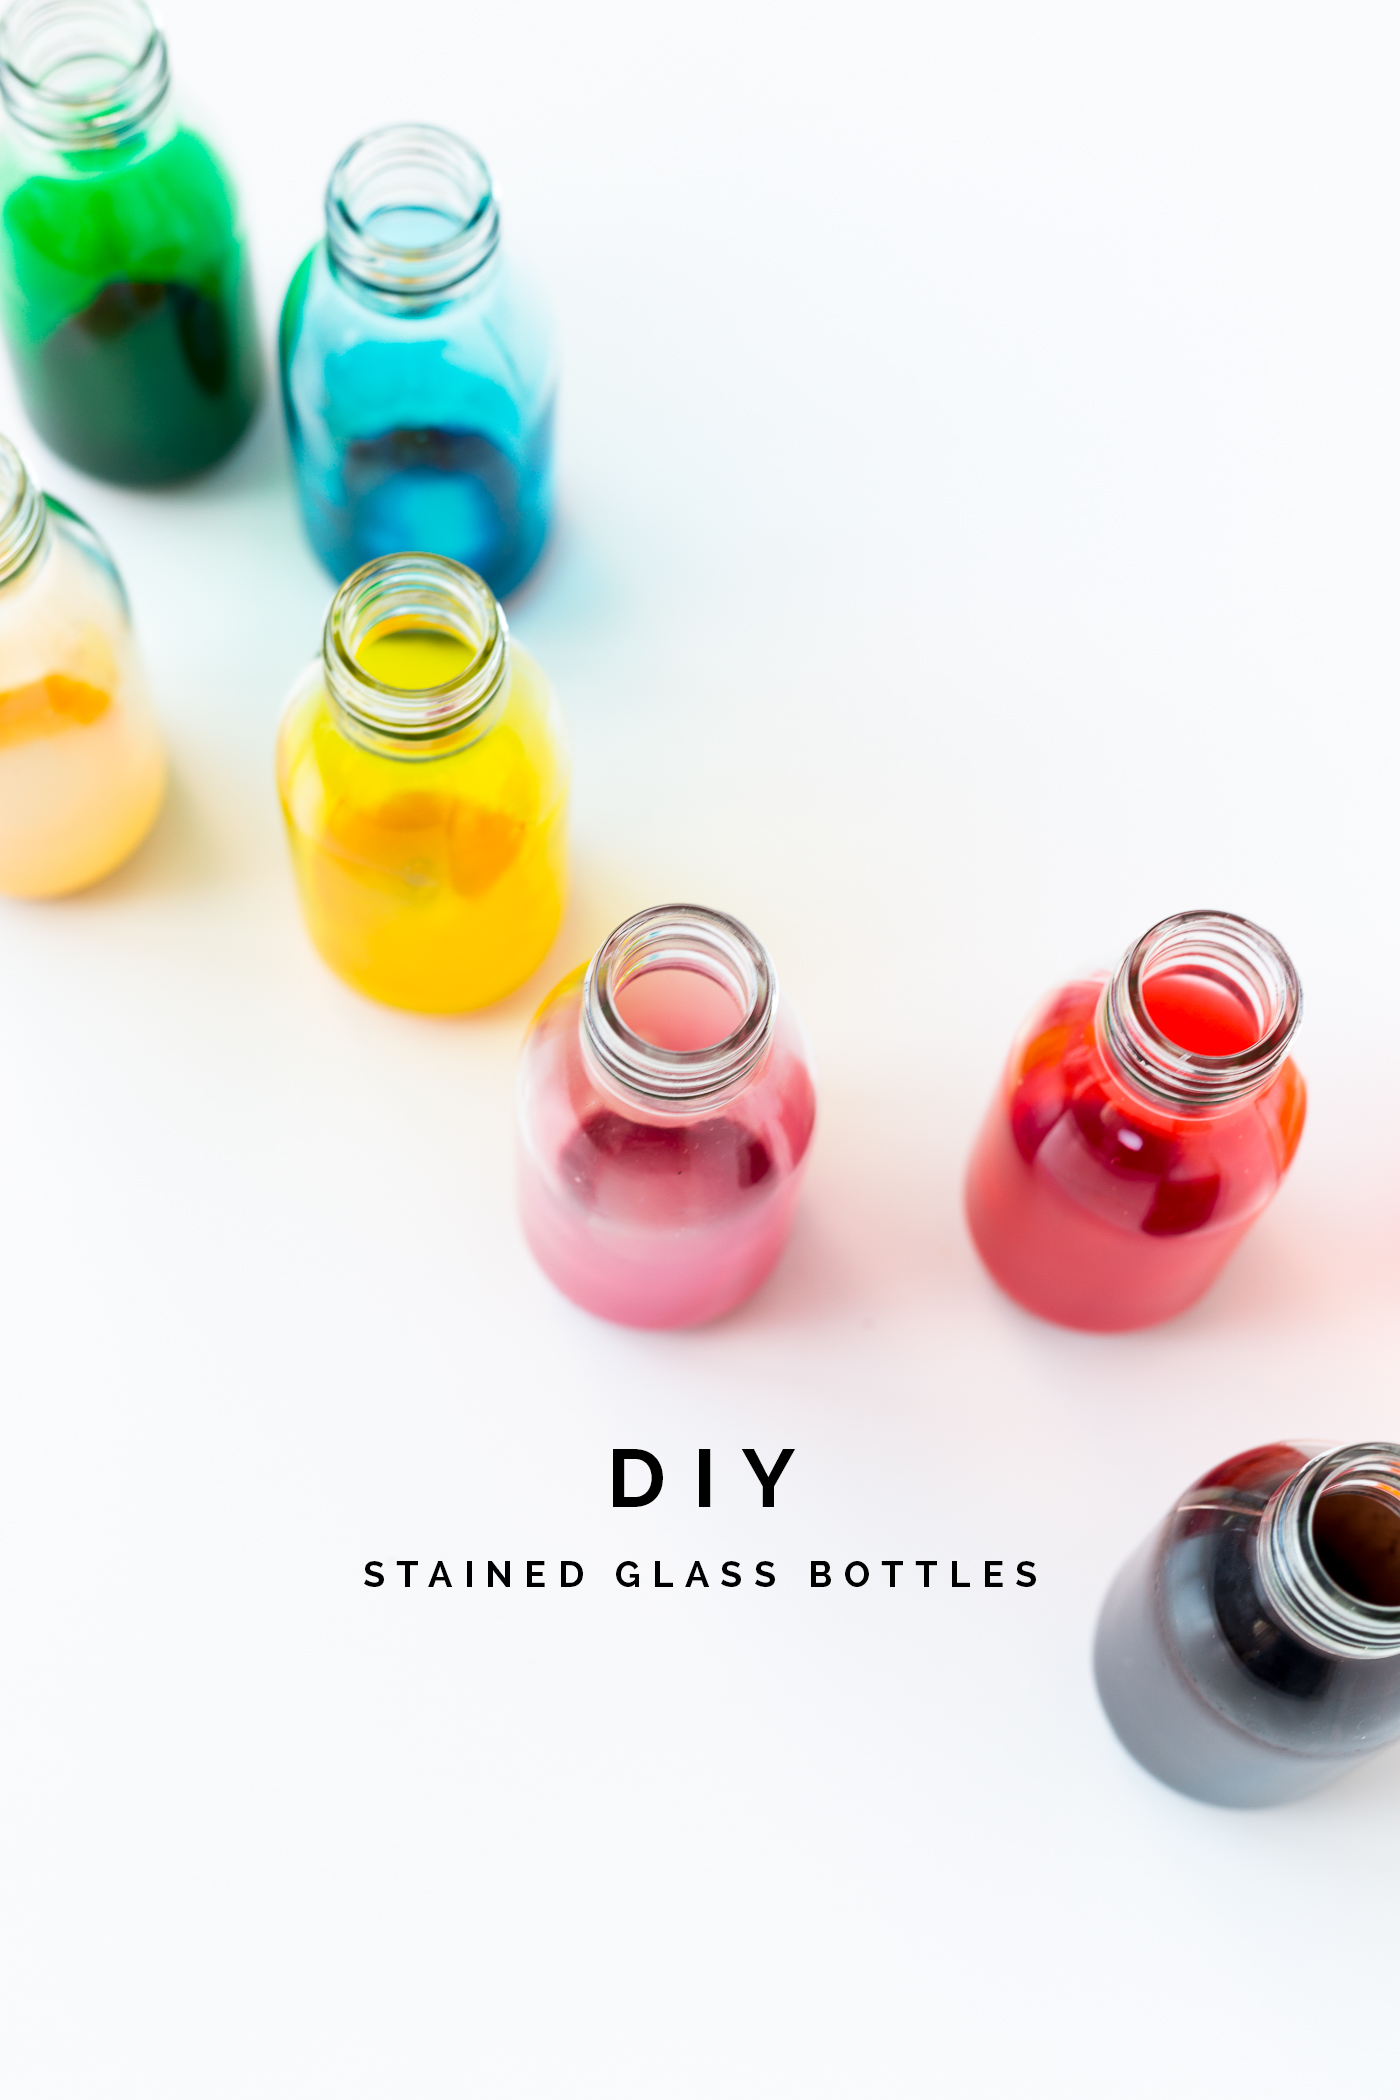 DIY-Stained-Glass-Bottles-Tutorial-_-@fallfordiy